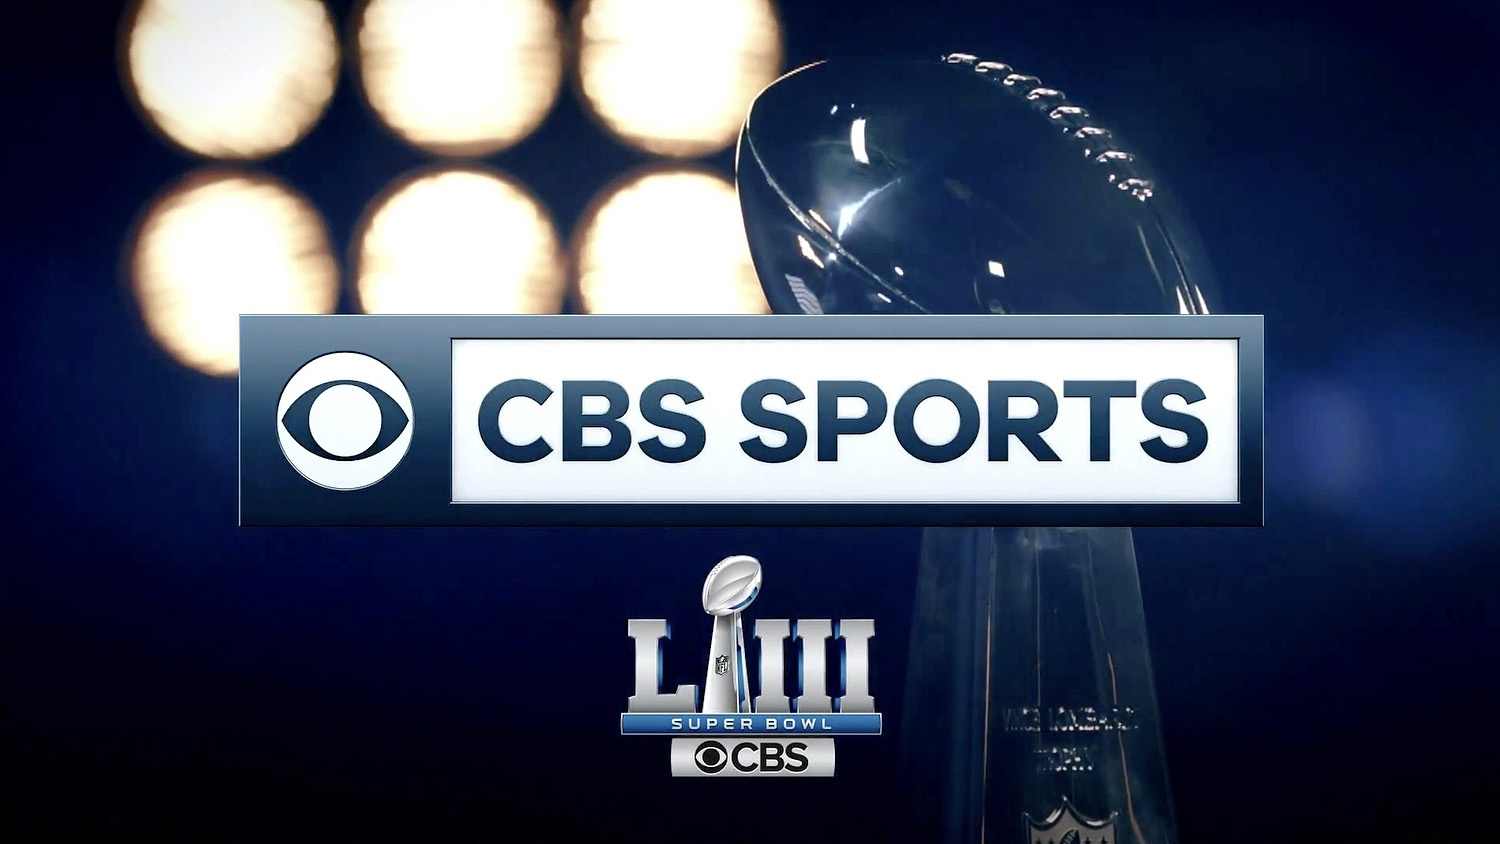 Cbs Sports Brings Ar, 8K Tech To Super Bowl Liii Coverage with regard to Cbs Sports Super Bowl